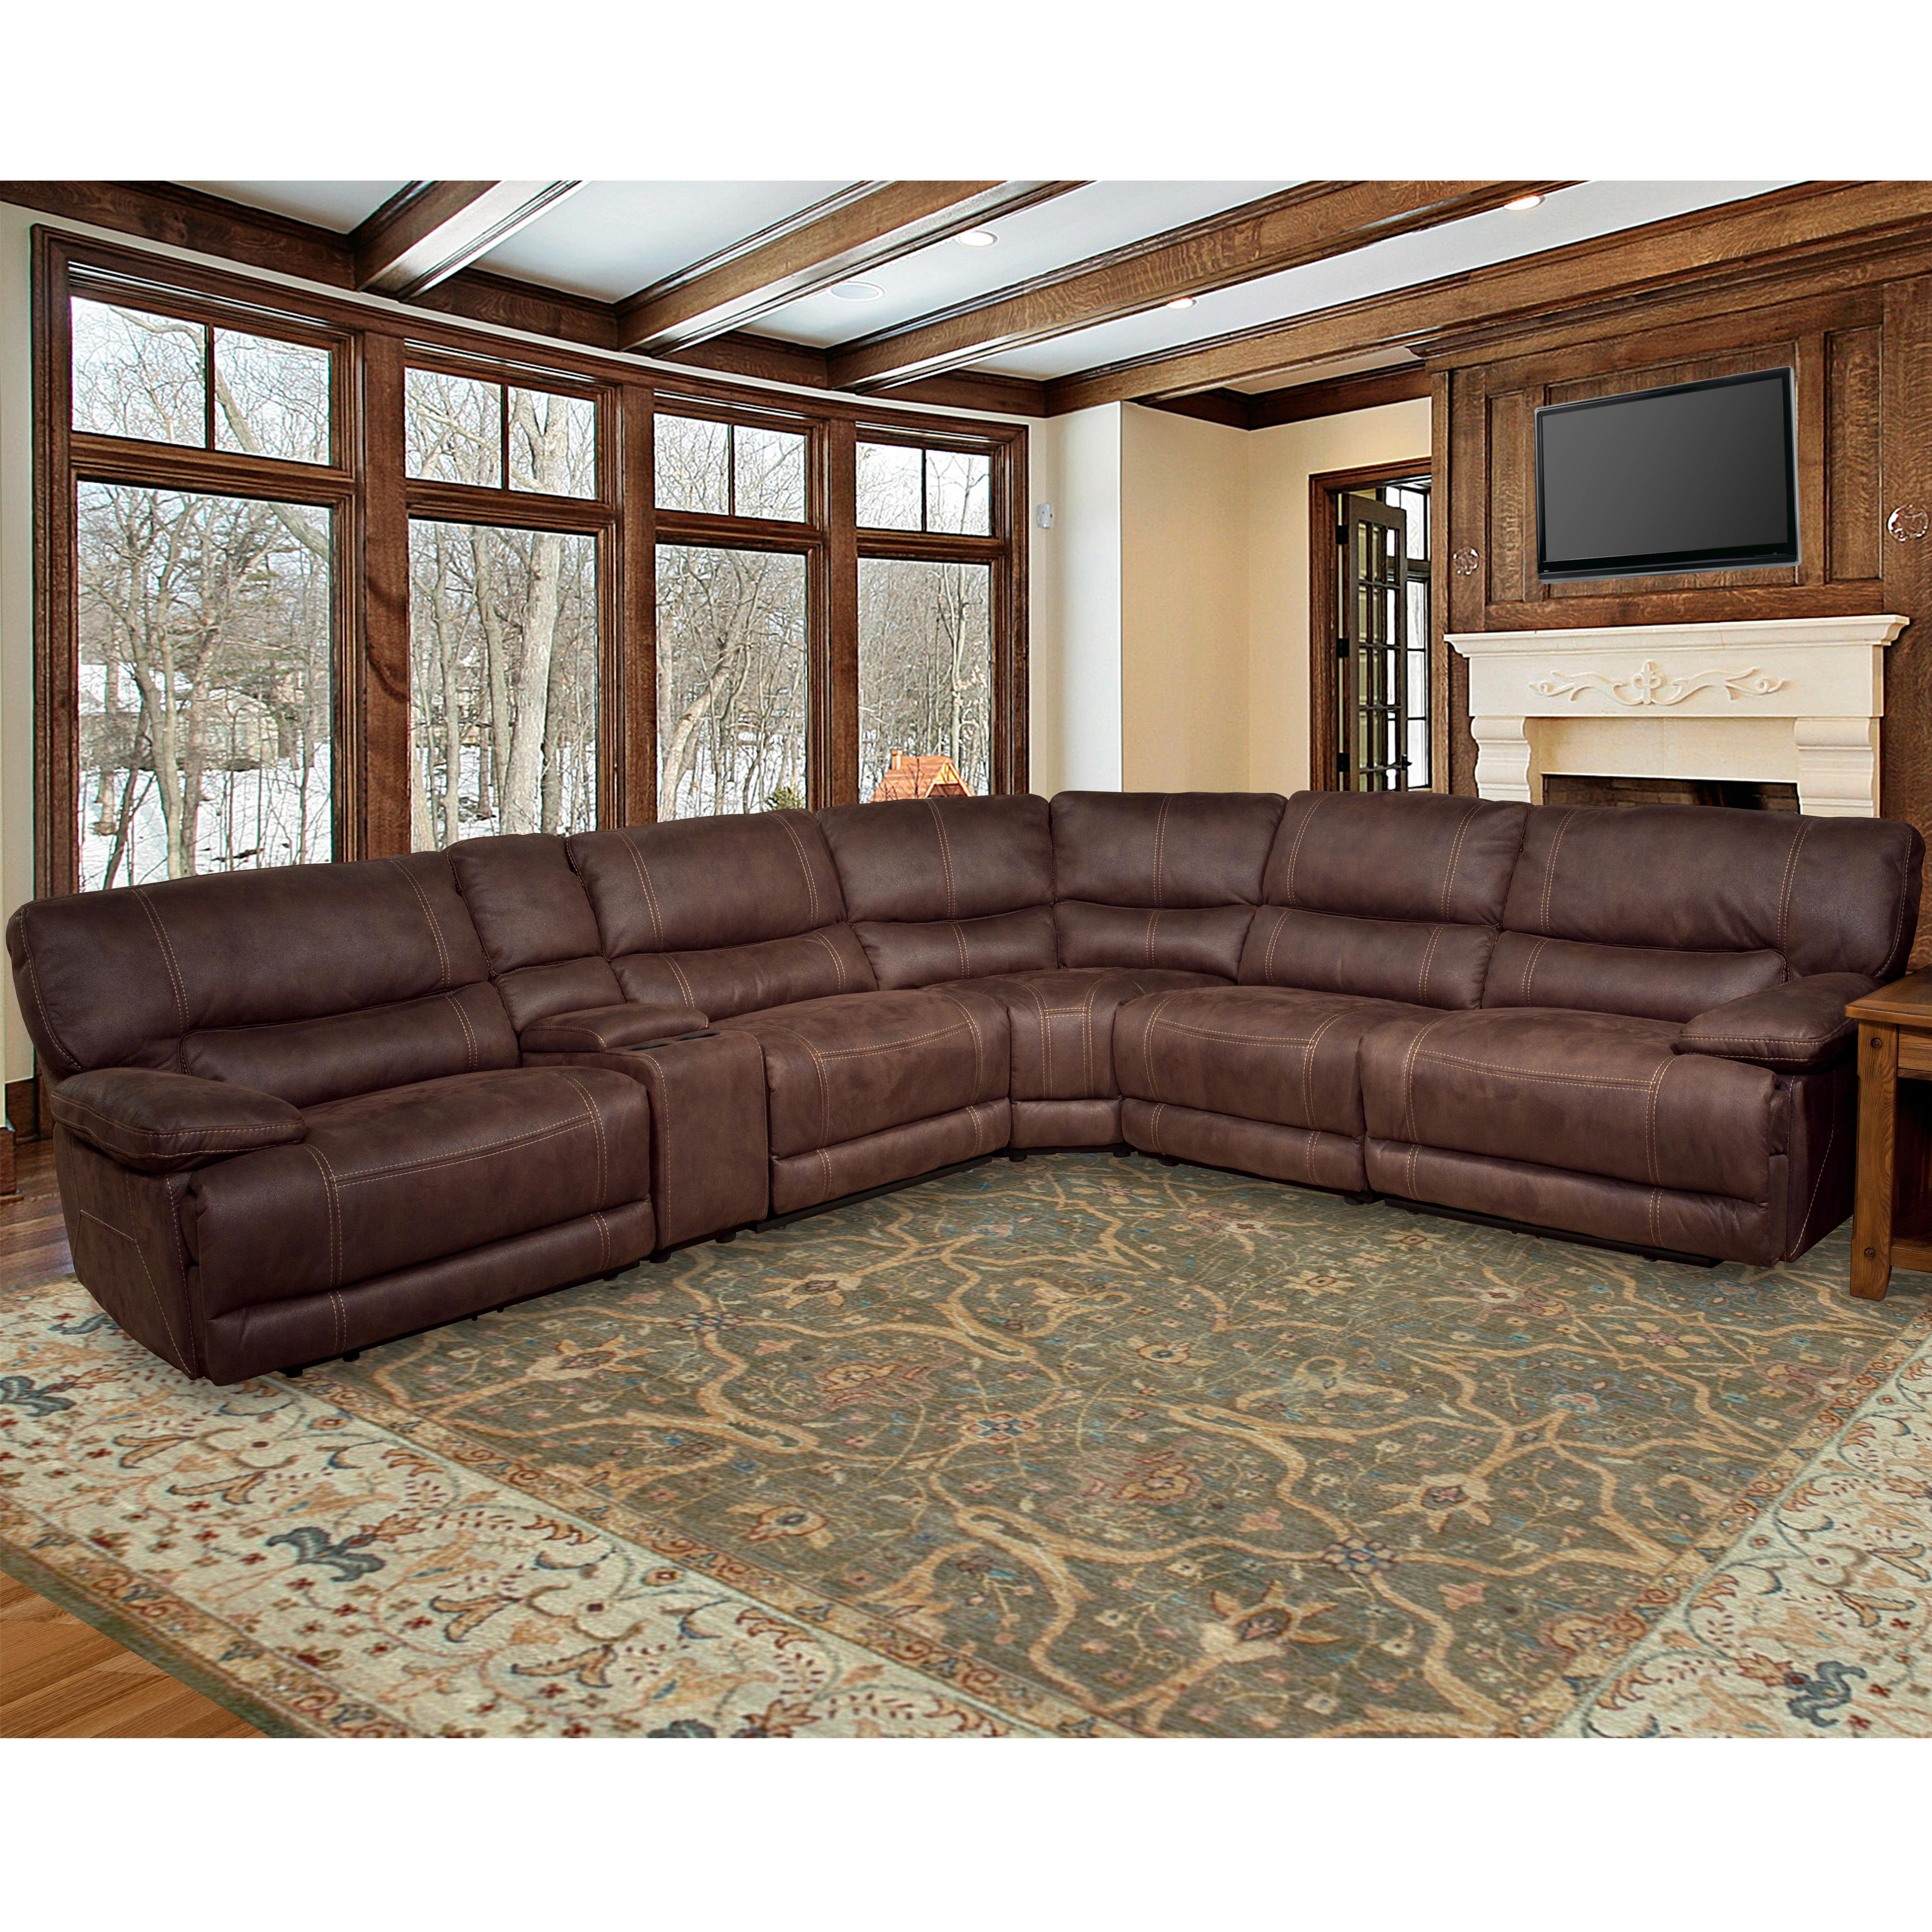 Pegasus Power Reclining Sectional Sofa by Parker Living at Simply Home by Lindy's